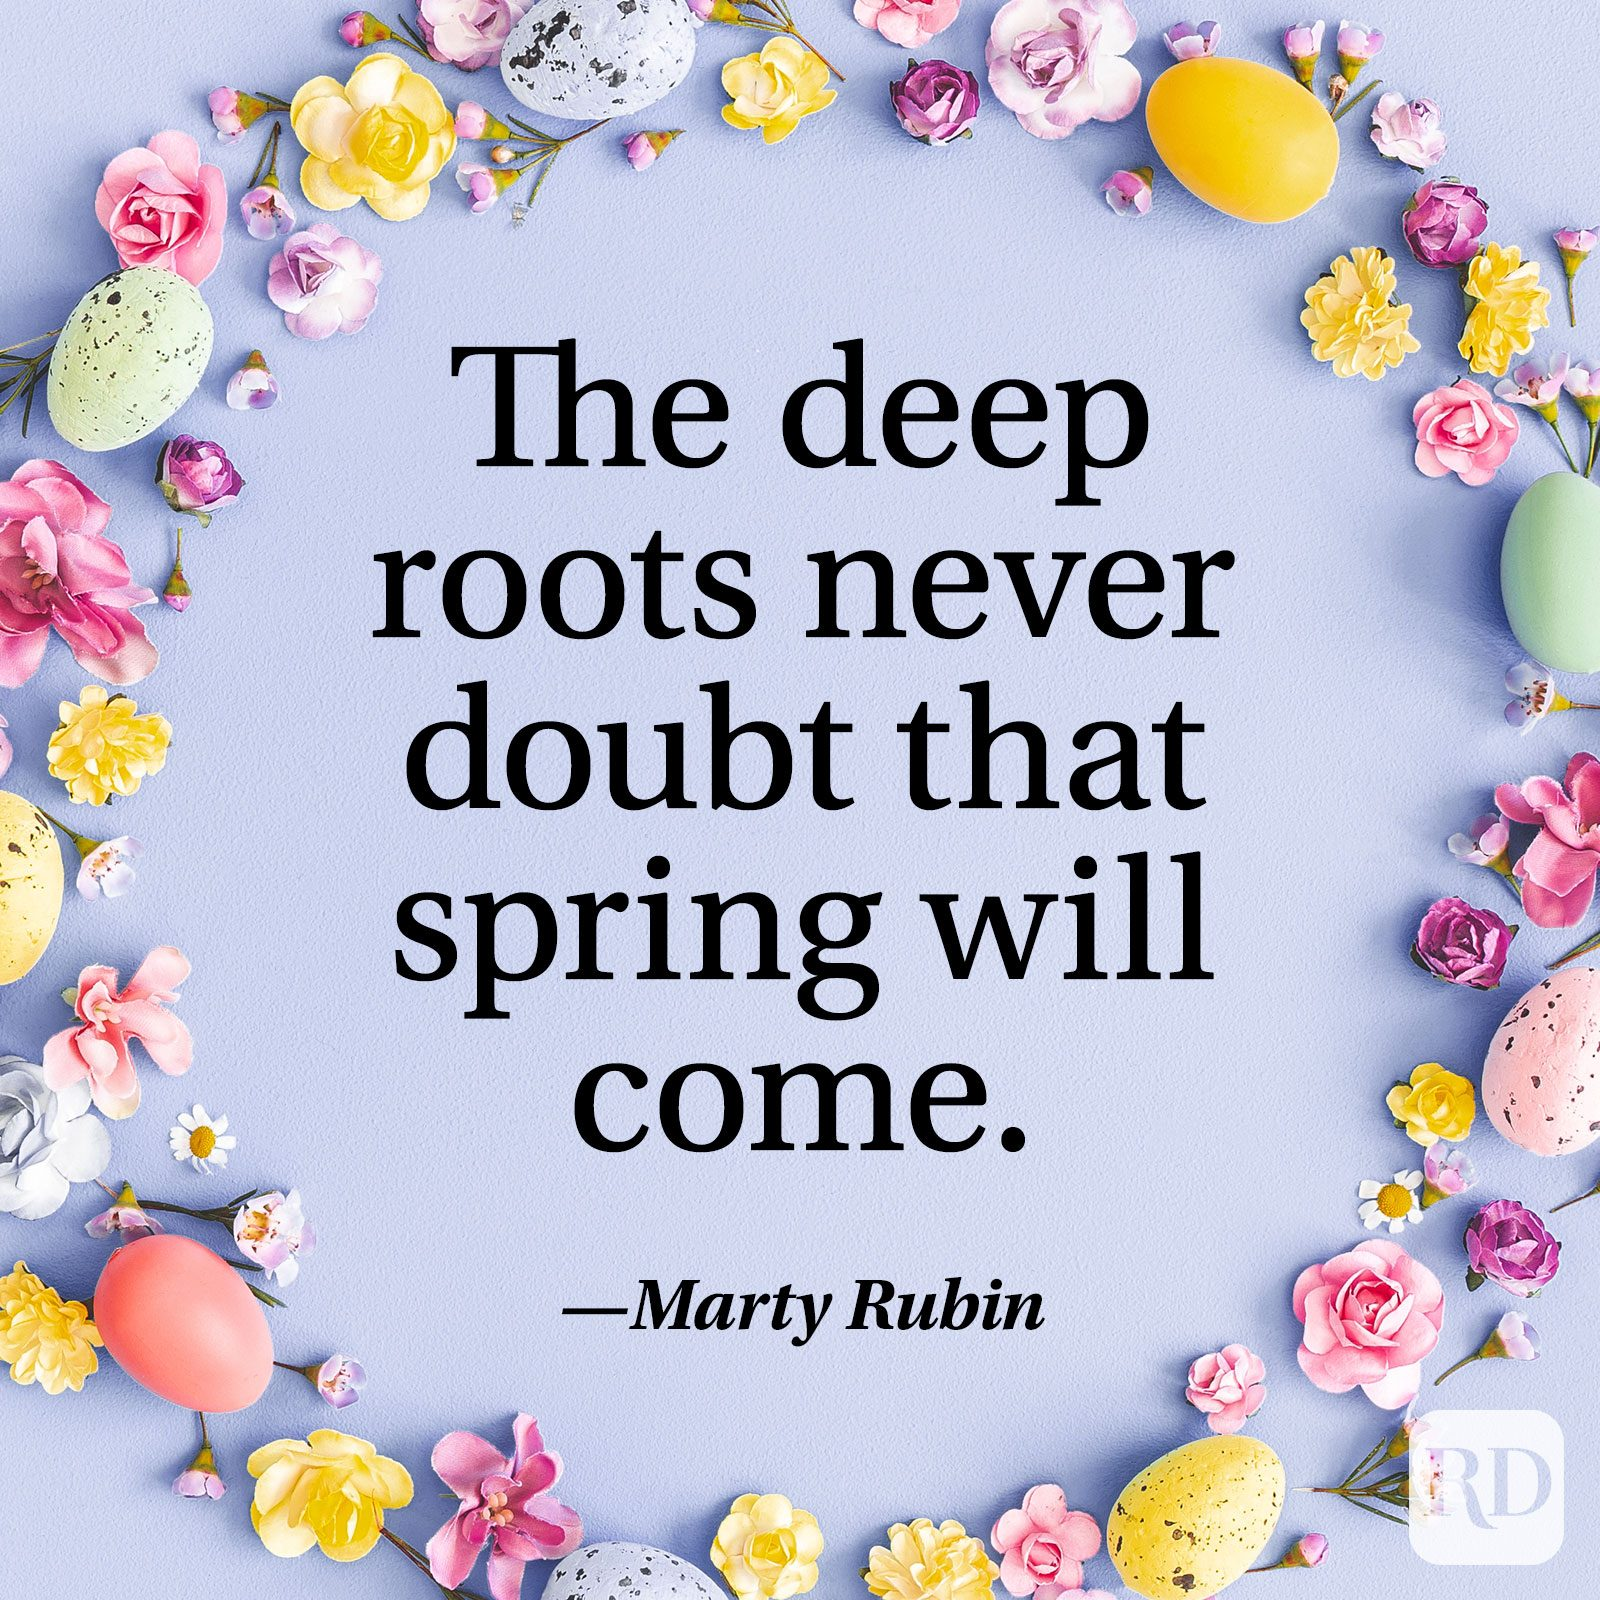 """The deep roots never doubt that spring will come."" — Marty Rubin"